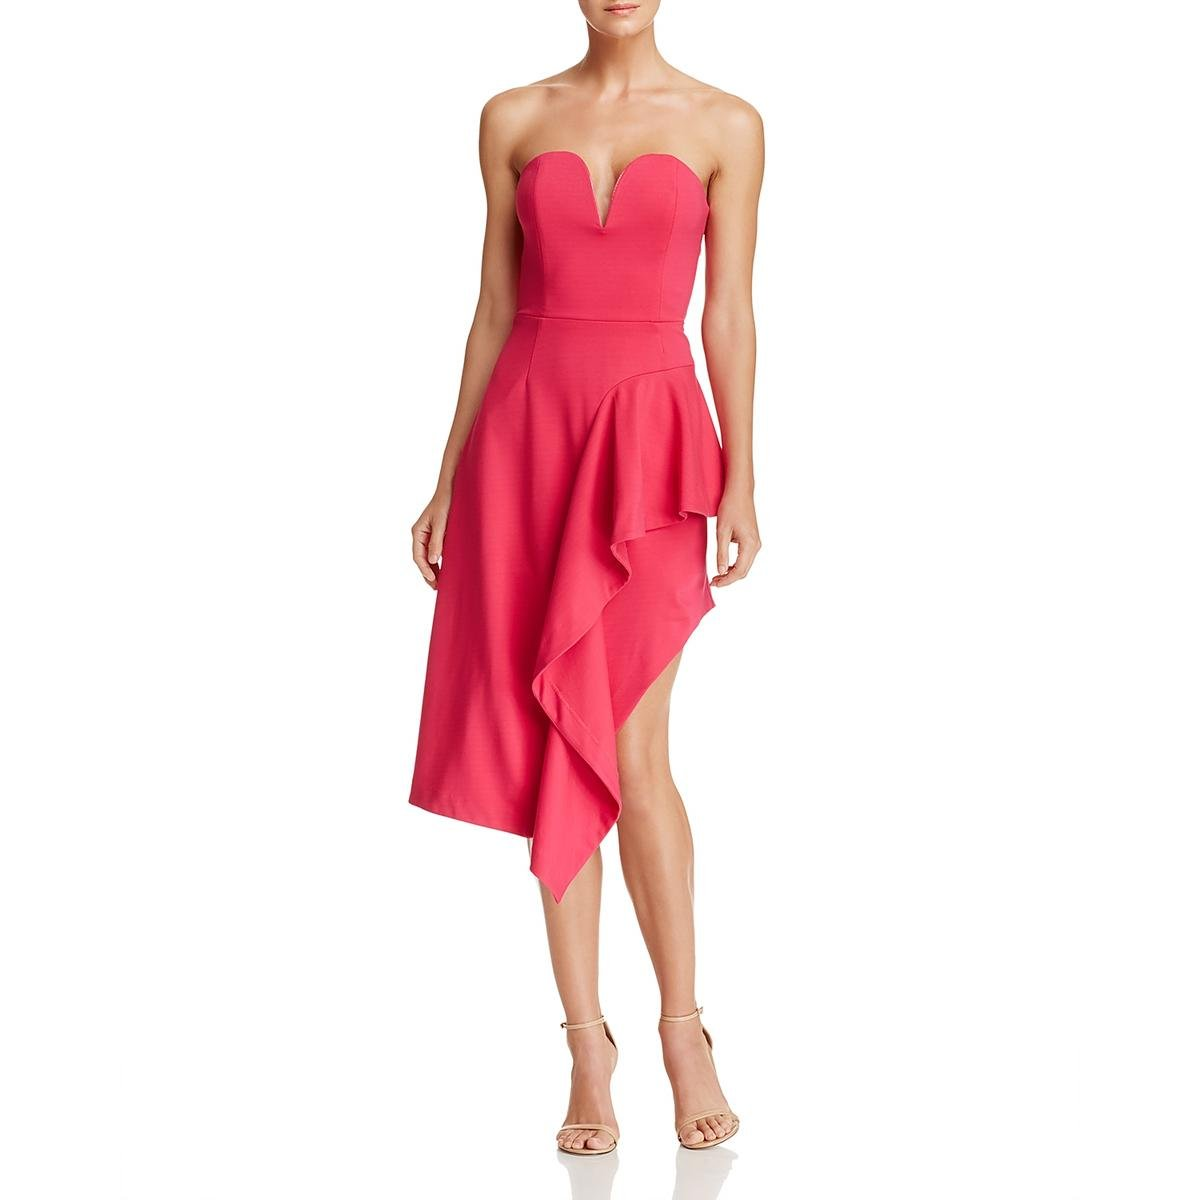 Fushia Elliatt Womens Impact Strapless Ruffled Cocktail Dress